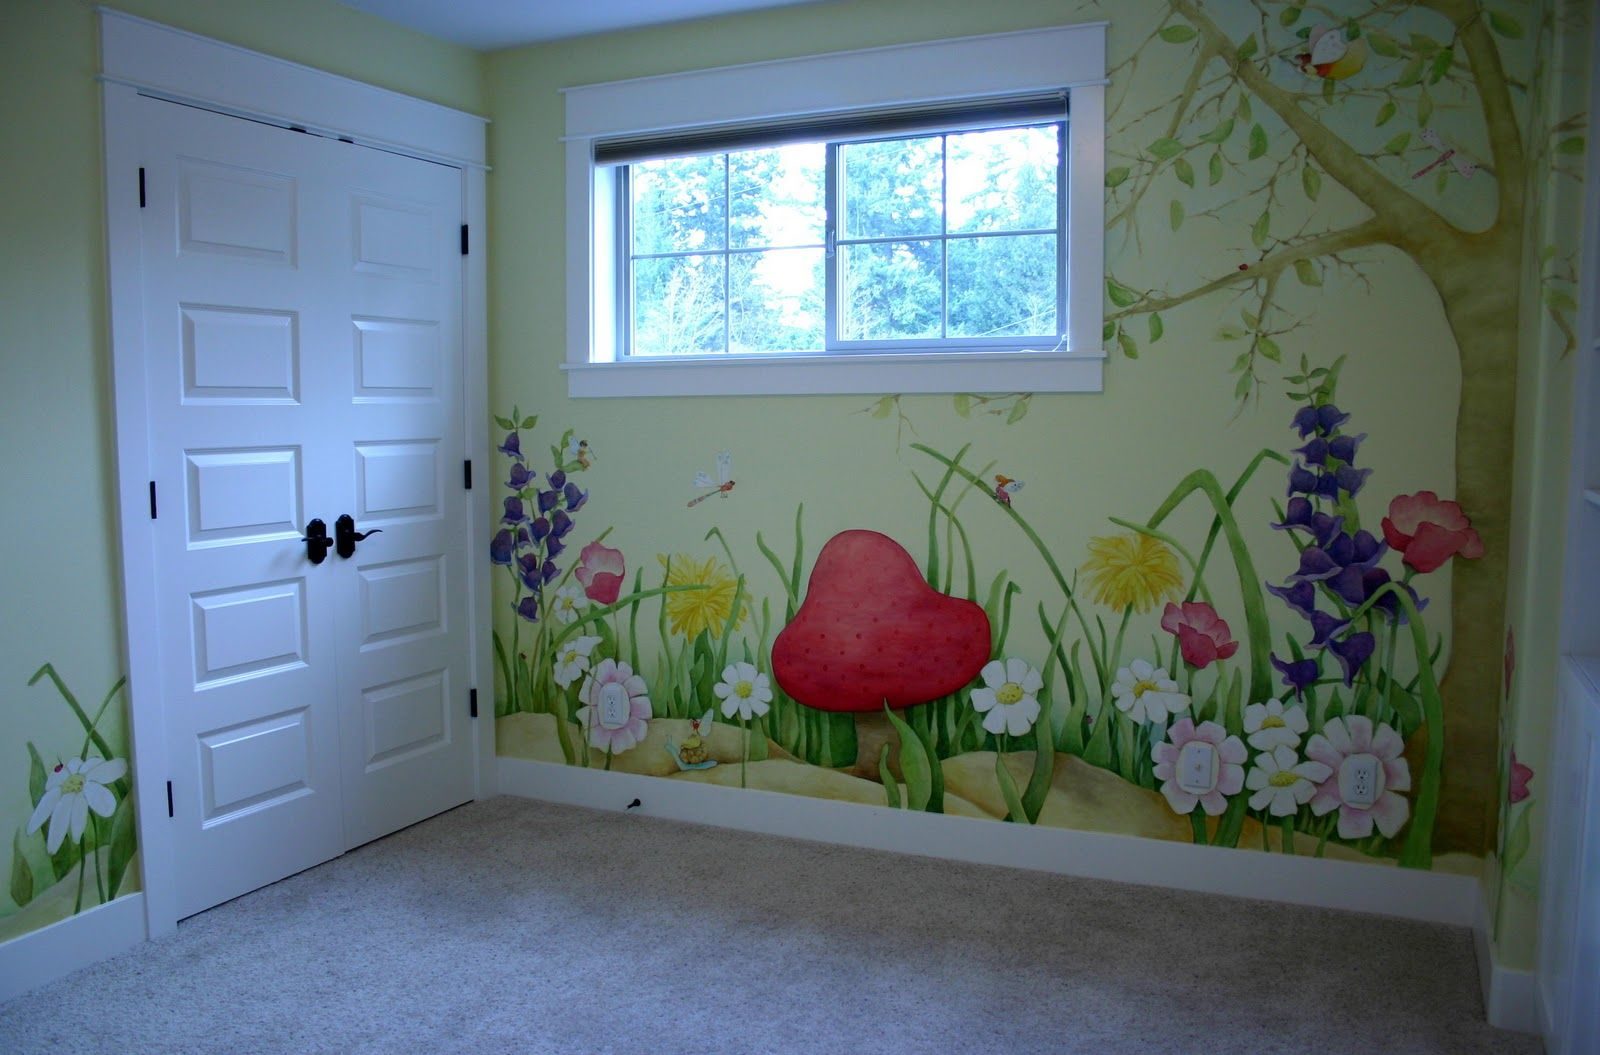 Superb Wall Murals For Kids Playrooms · Ordinary Wall Murals For Kids  Playrooms Part 33